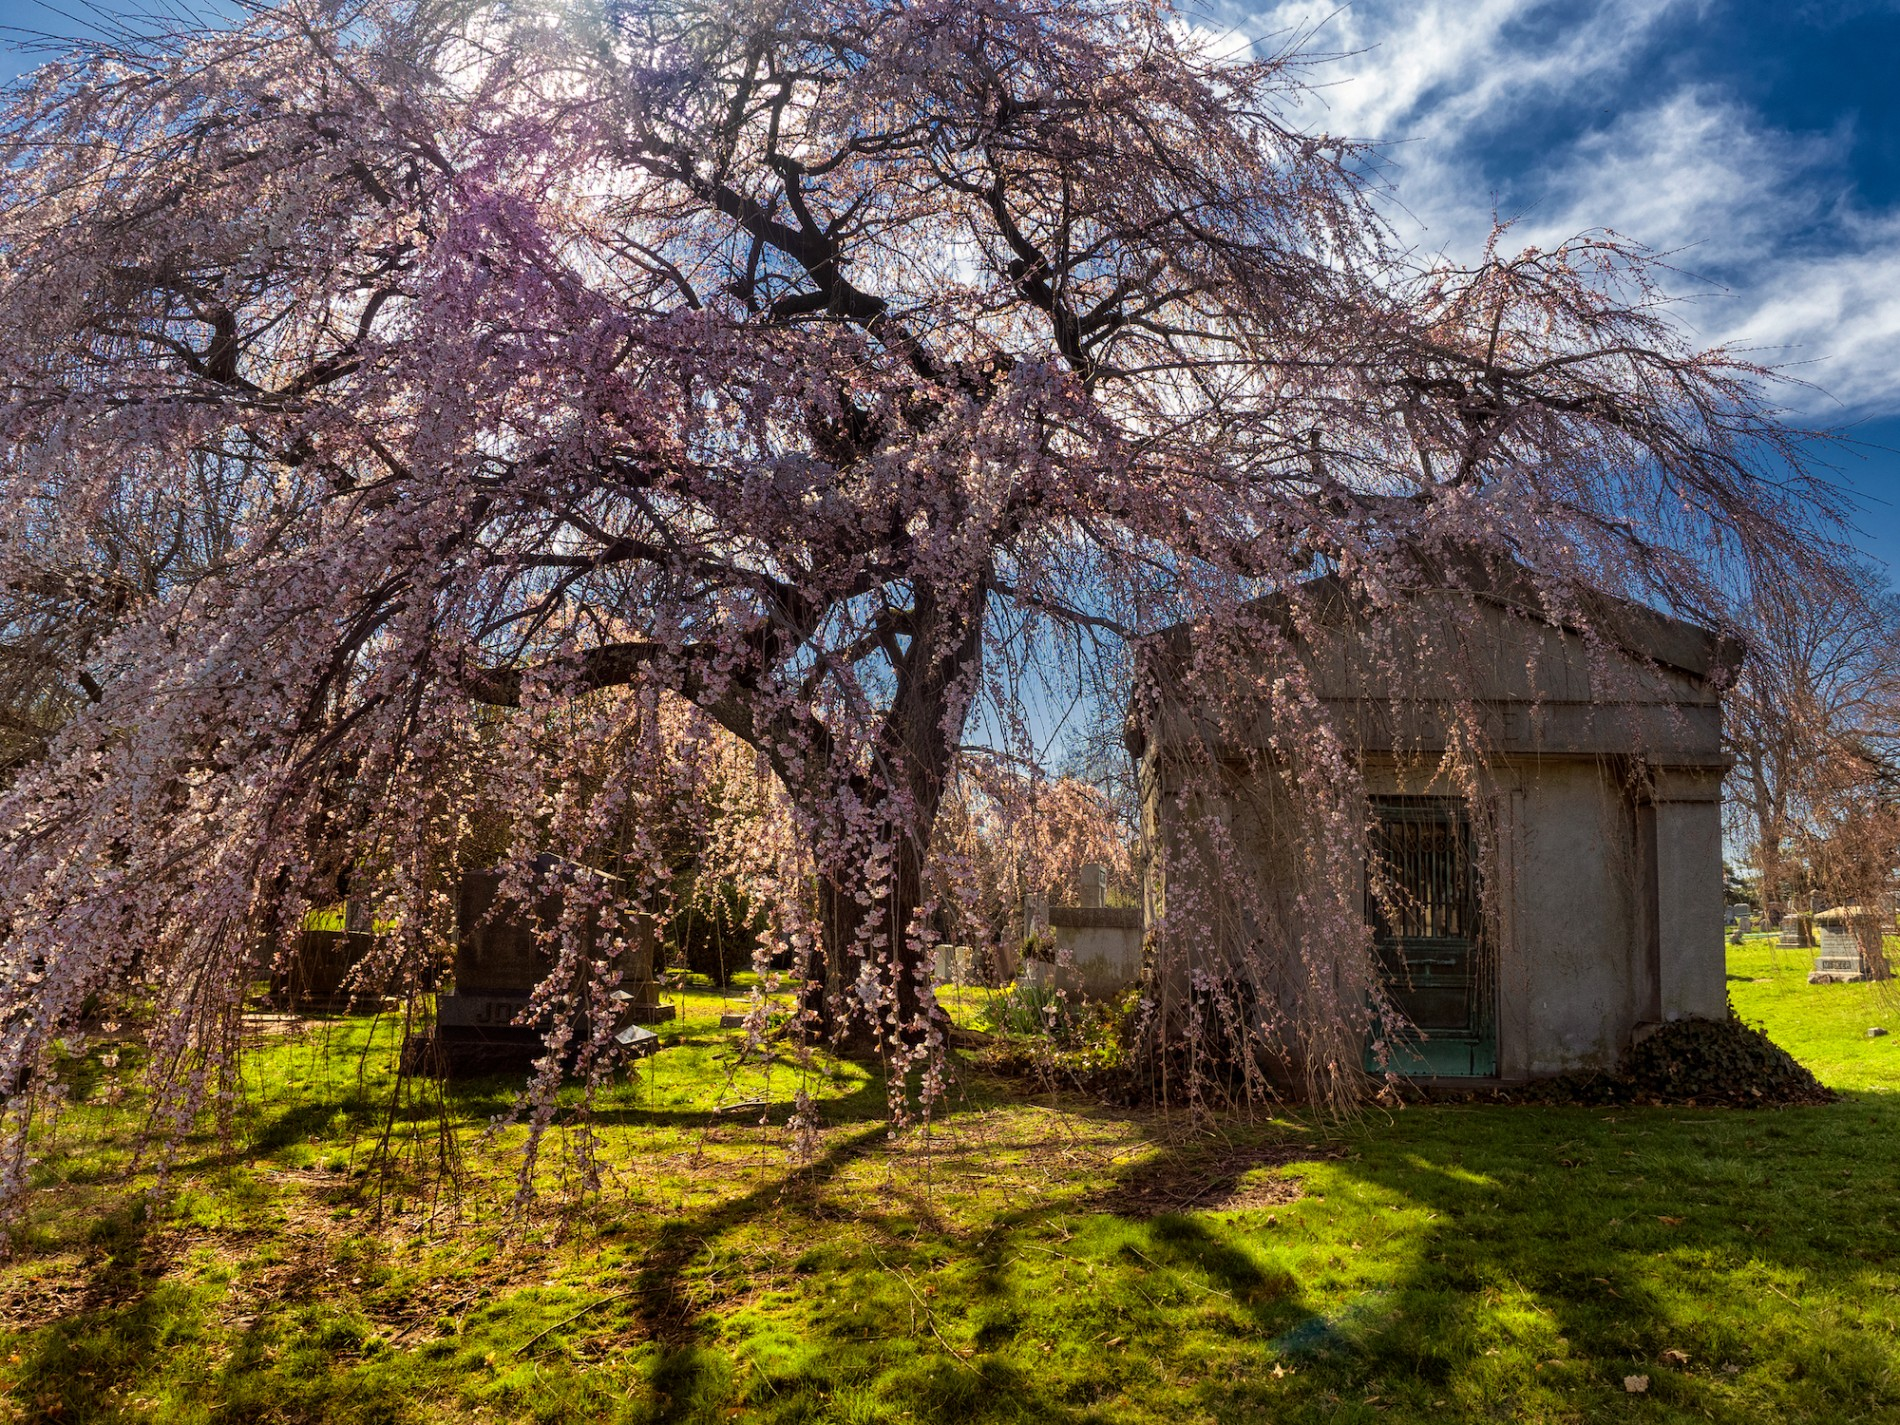 century-and-a-half-old trees, glacial ponds, and foot paths in Green-Wood Cemetery.